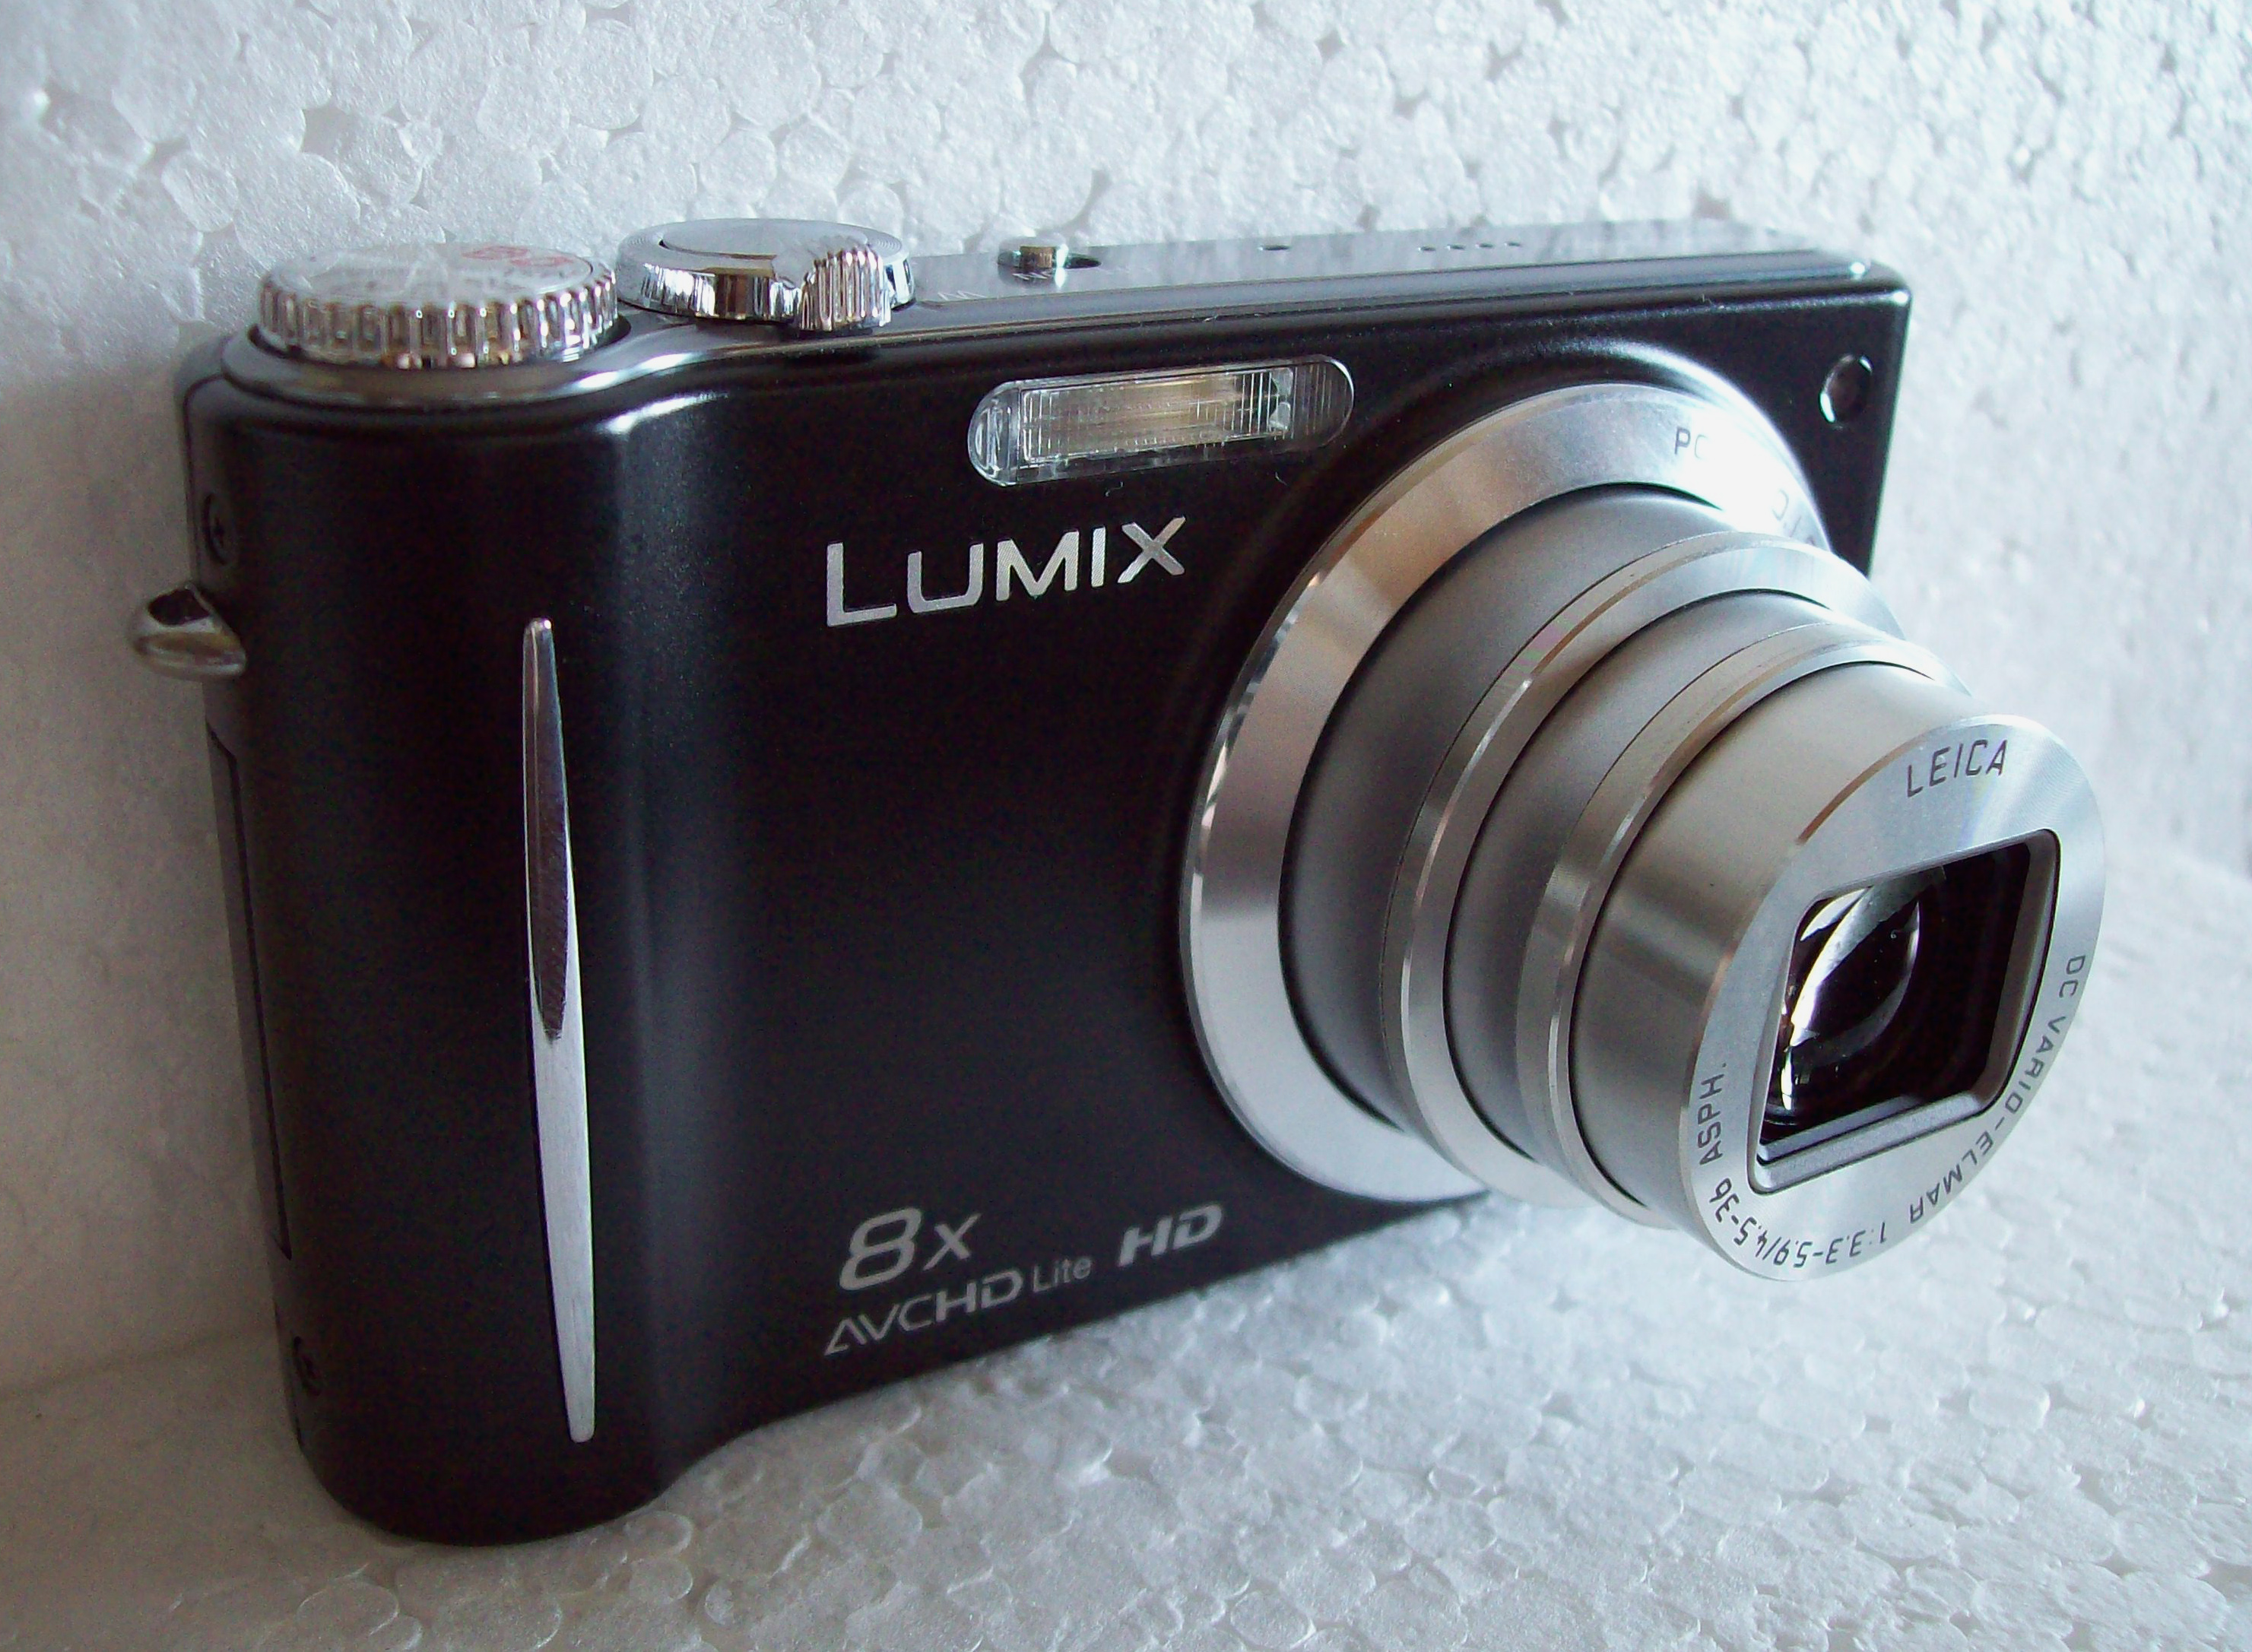 https://upload.wikimedia.org/wikipedia/commons/f/f4/Panasonic_Lumix_DMC-ZX3_camera_01.jpg